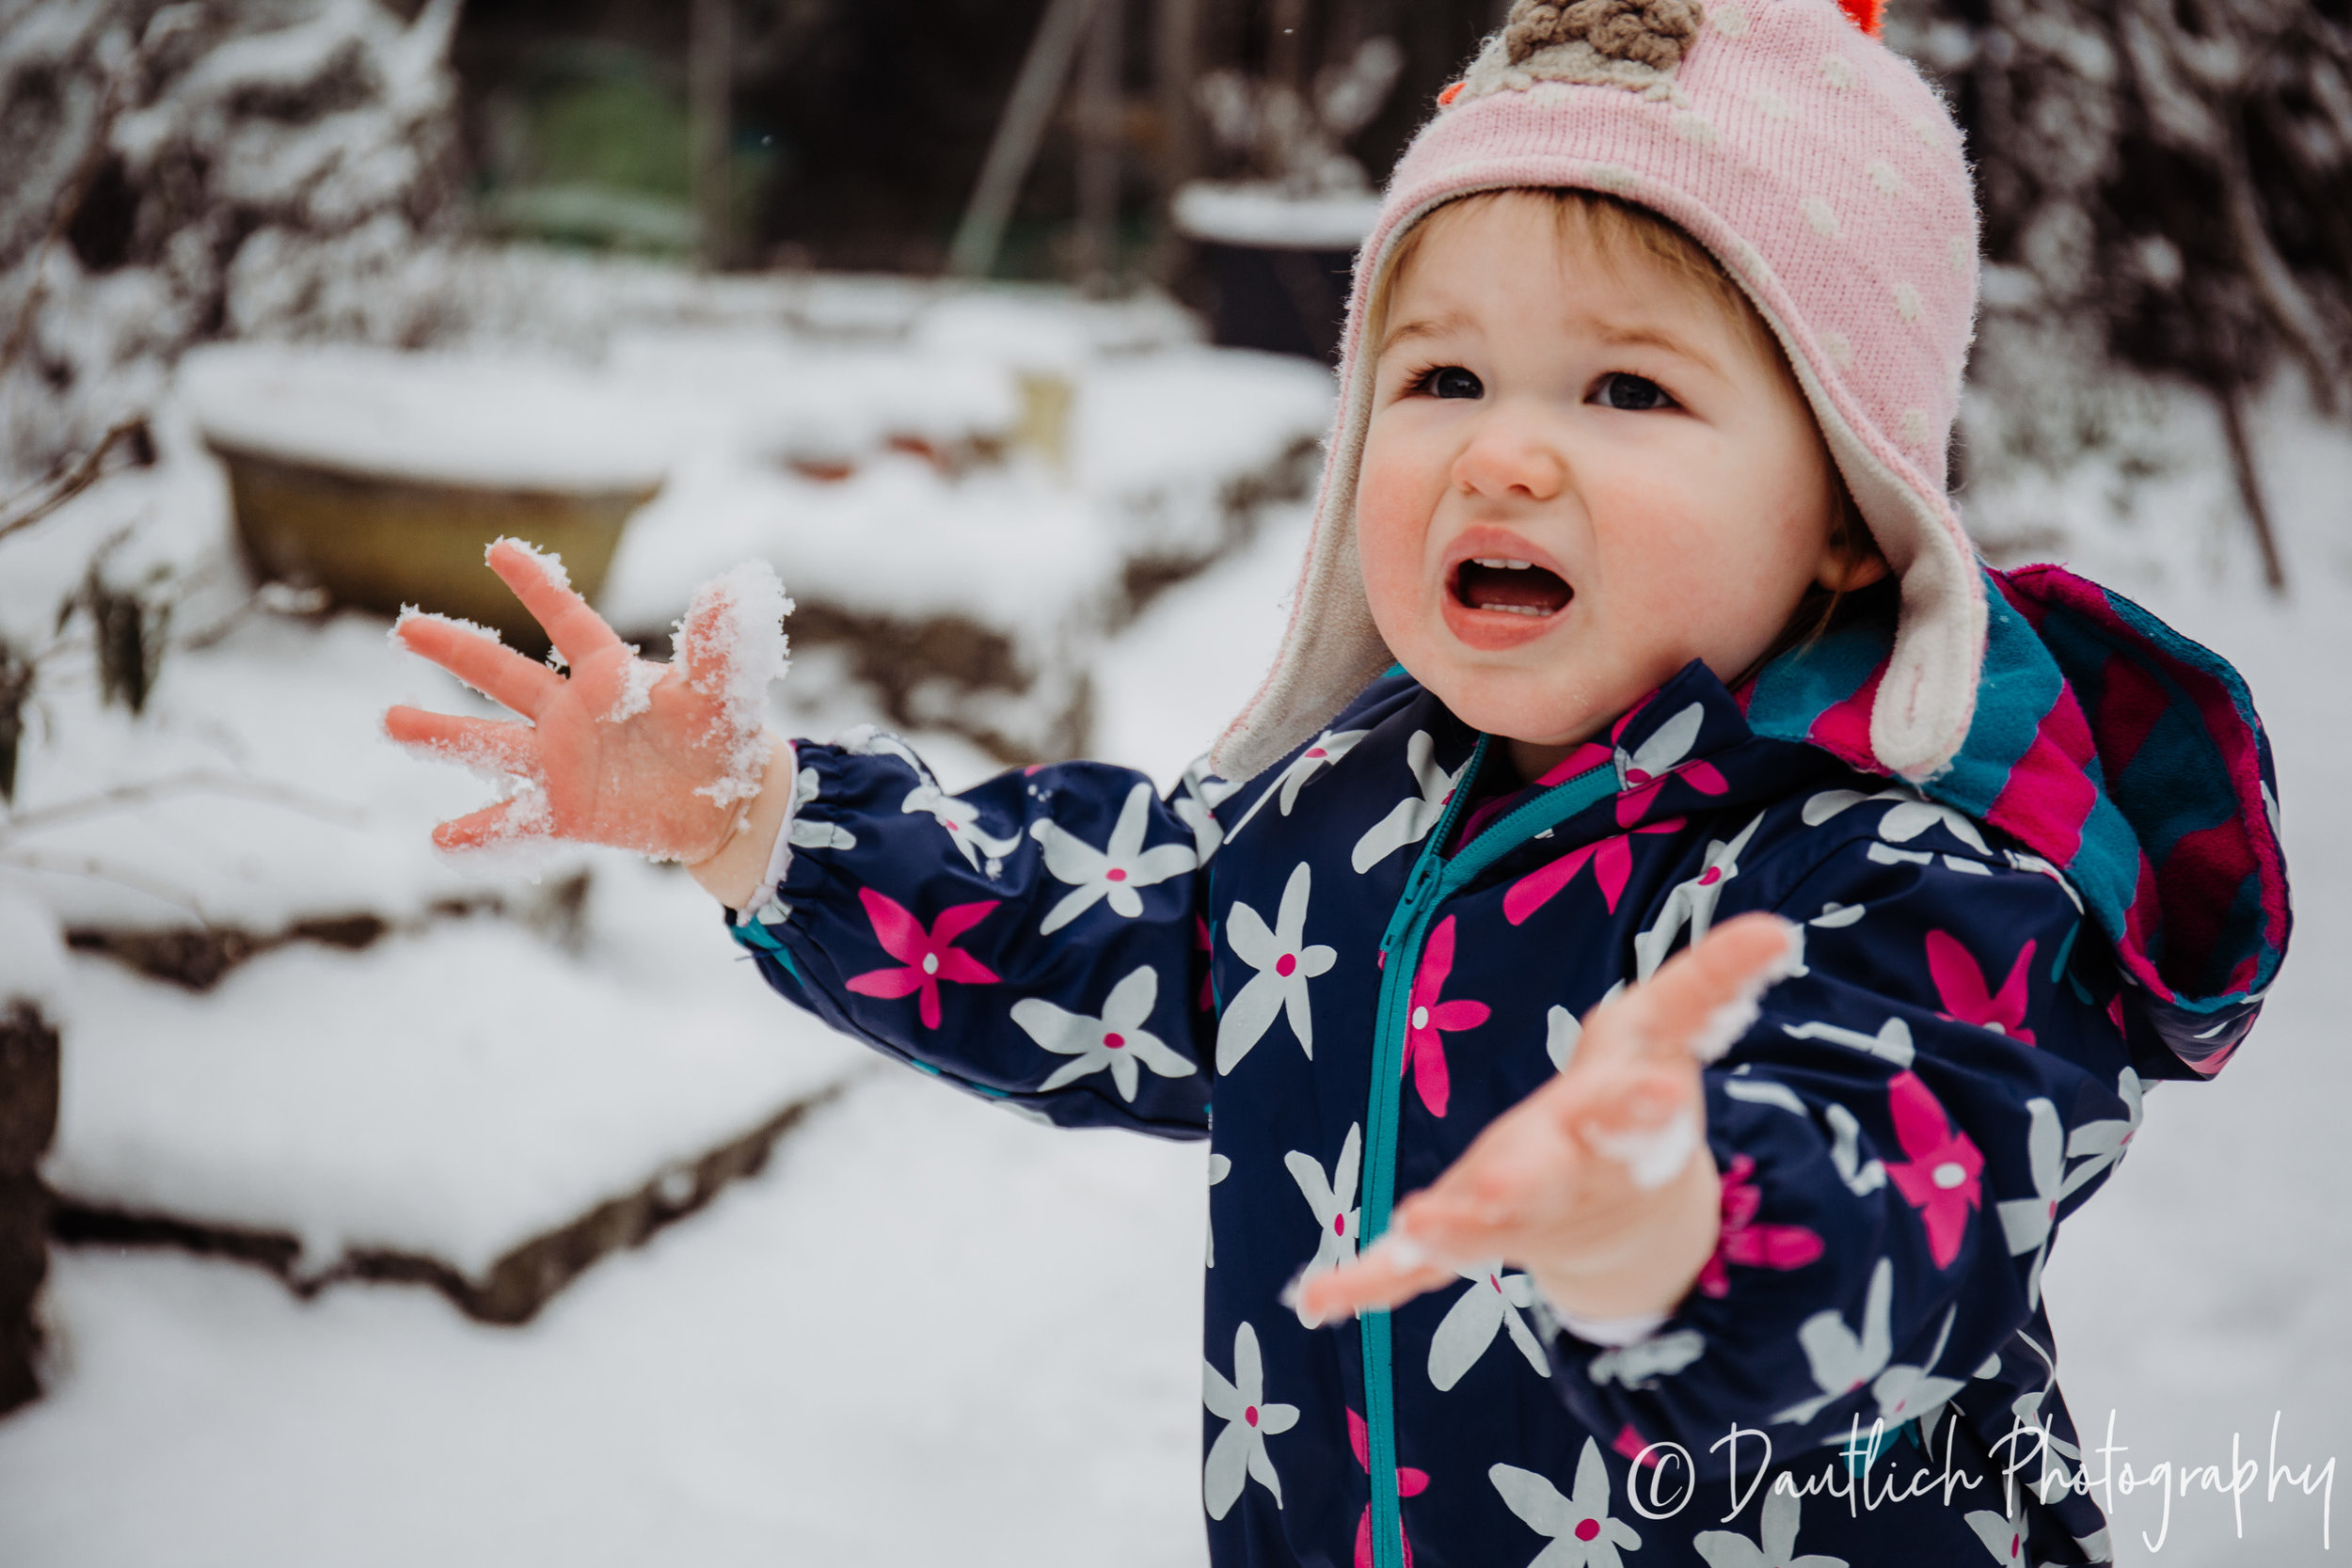 2.27.18_dautlich_photography_Hazel_snow_day-7.jpg